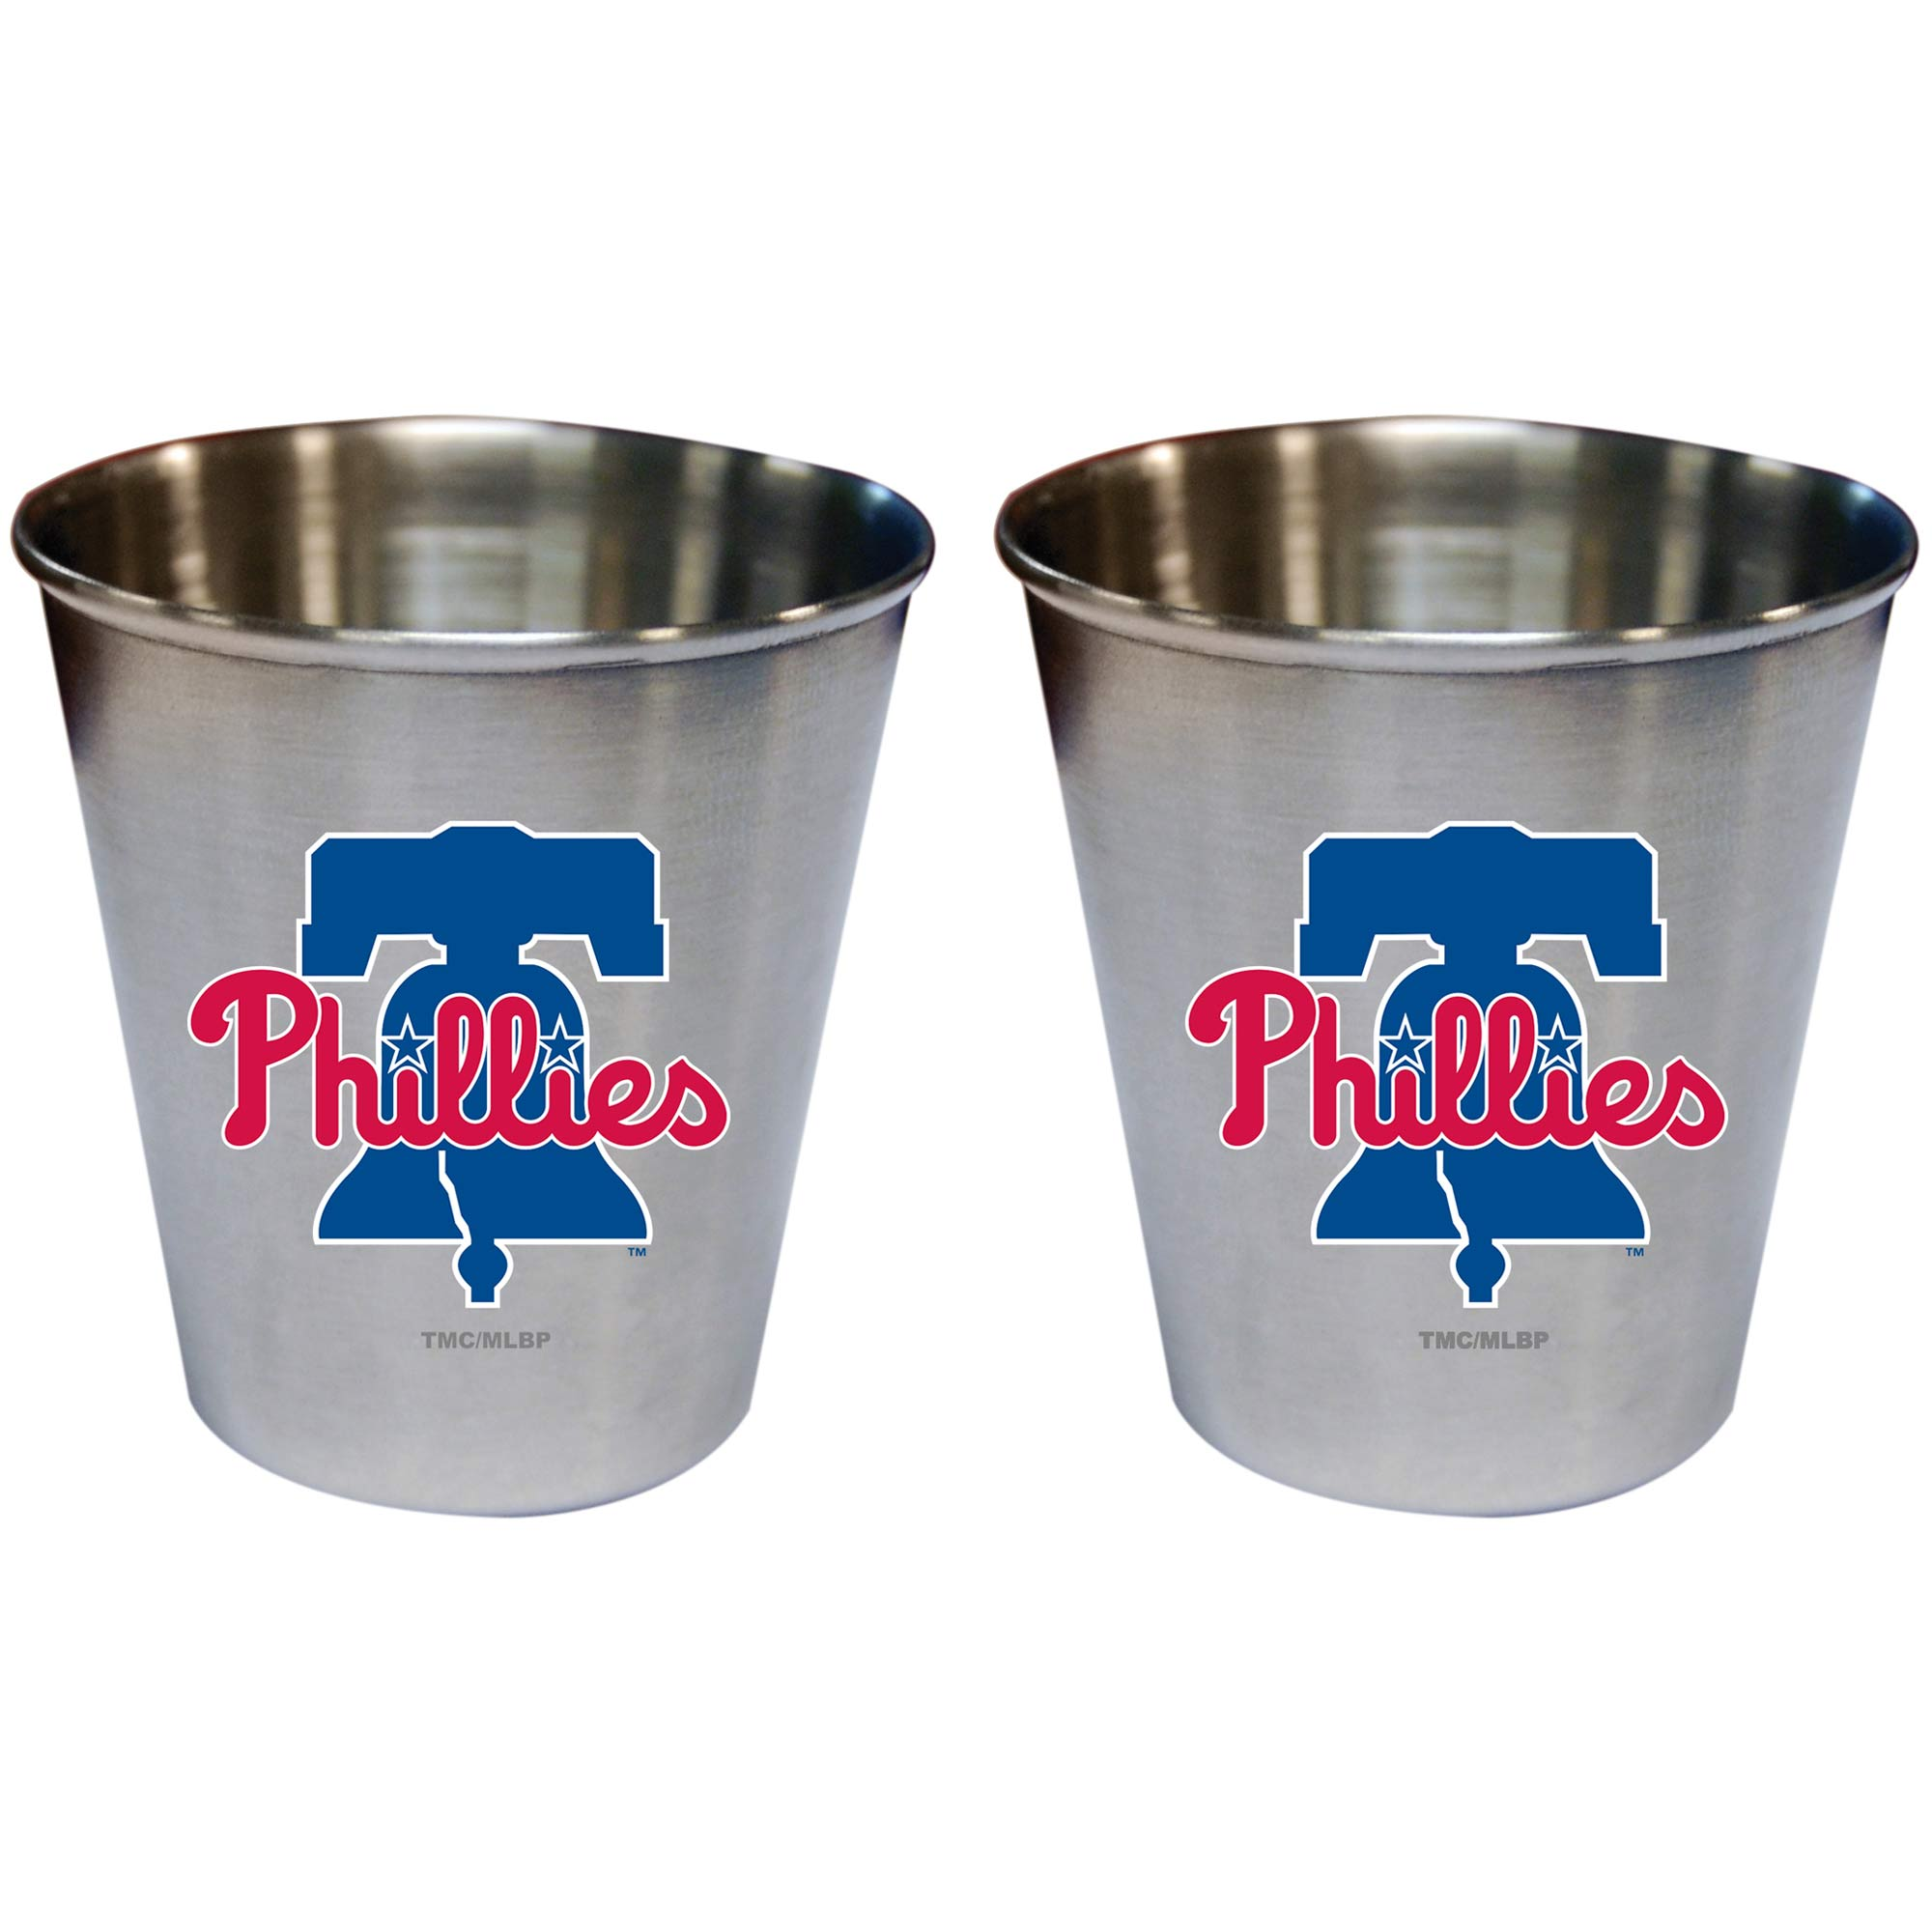 Philadelphia Phillies 2oz. Stainless Steel Collector Cups Two-Pack Set